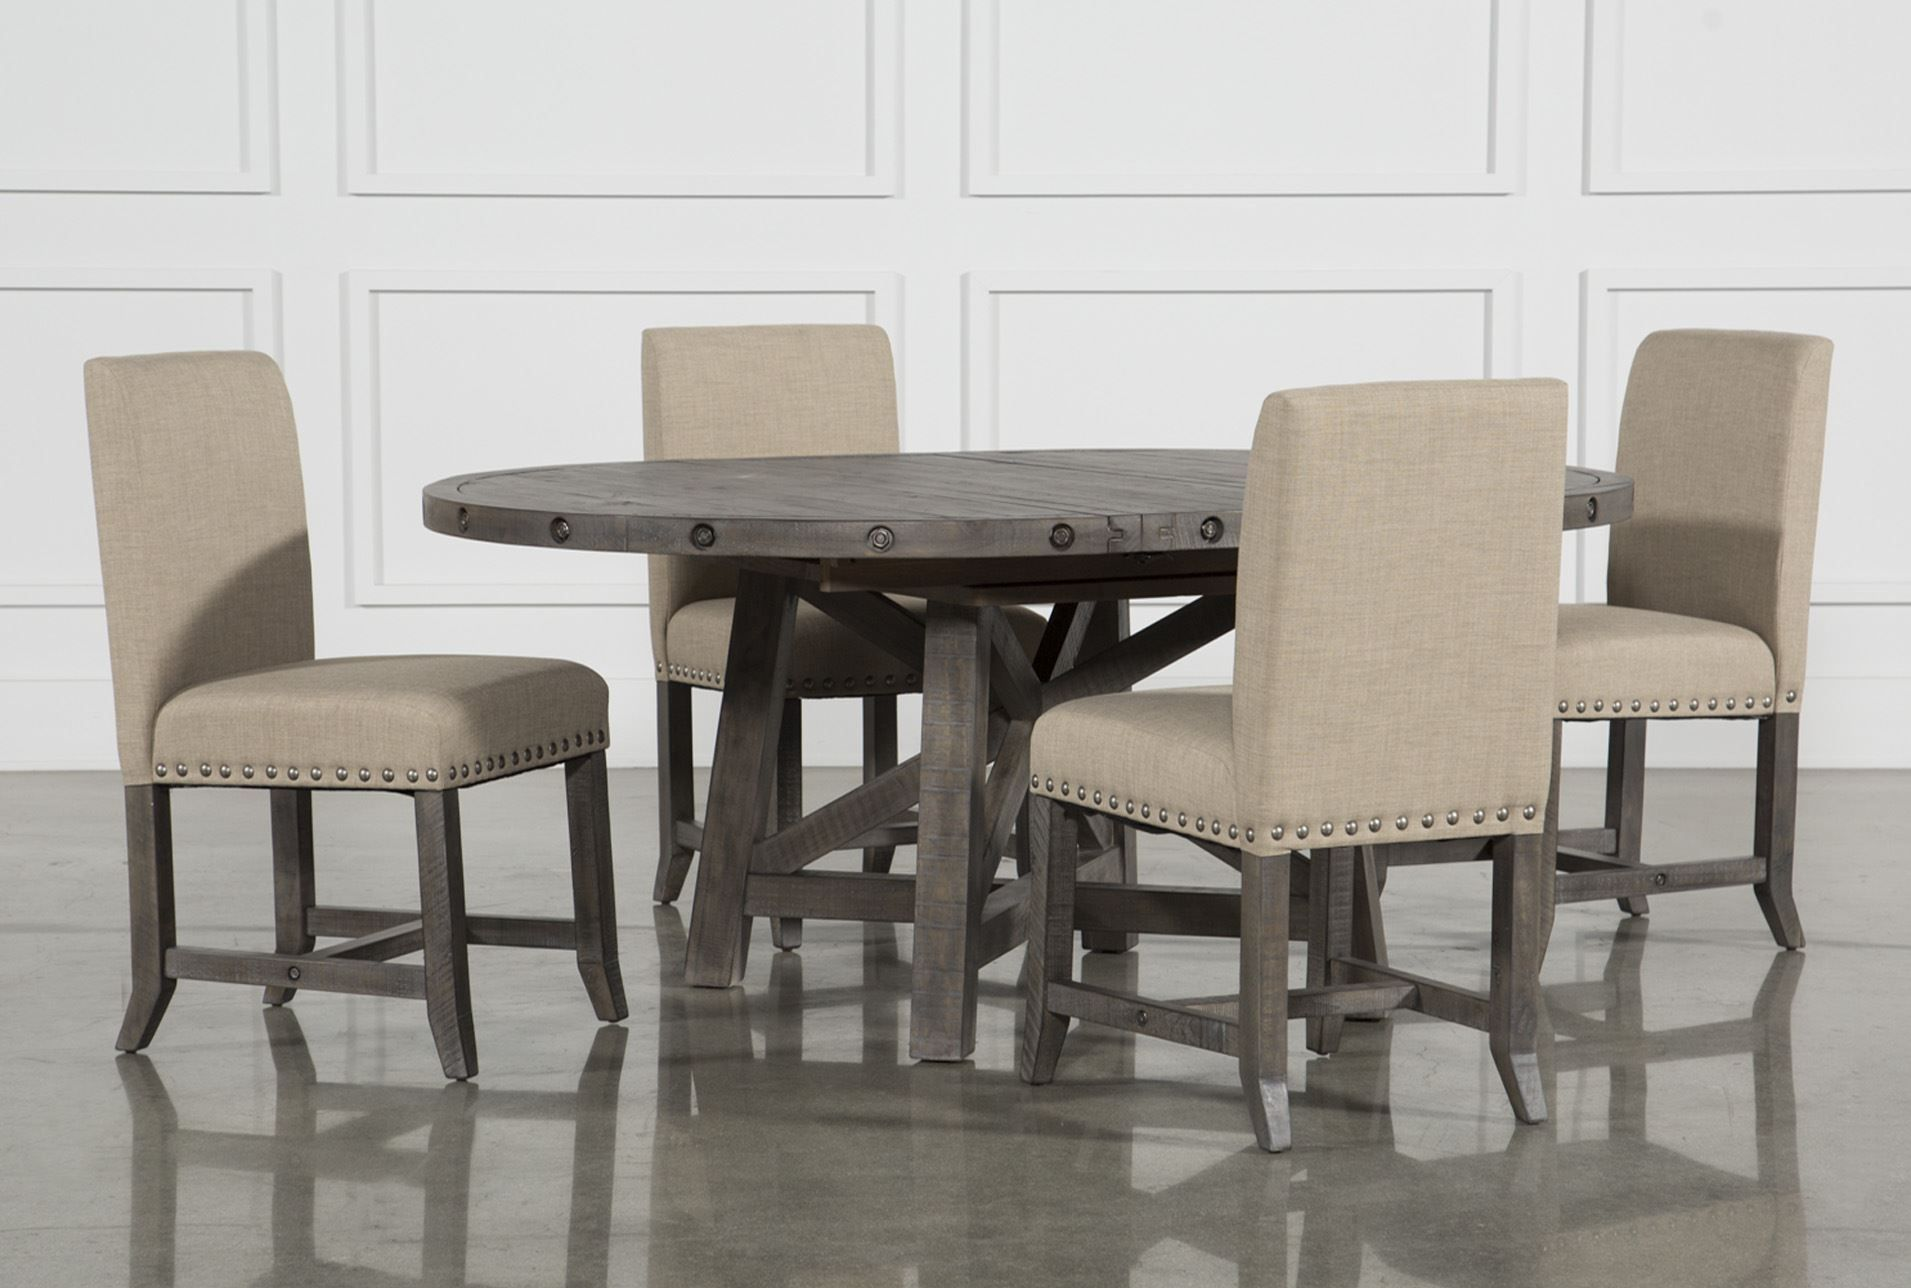 Jaxon Grey 5 Piece Round Extension Dining Set Wupholstered Chairs Pleasing Dining Room Upholstered Chairs Design Inspiration